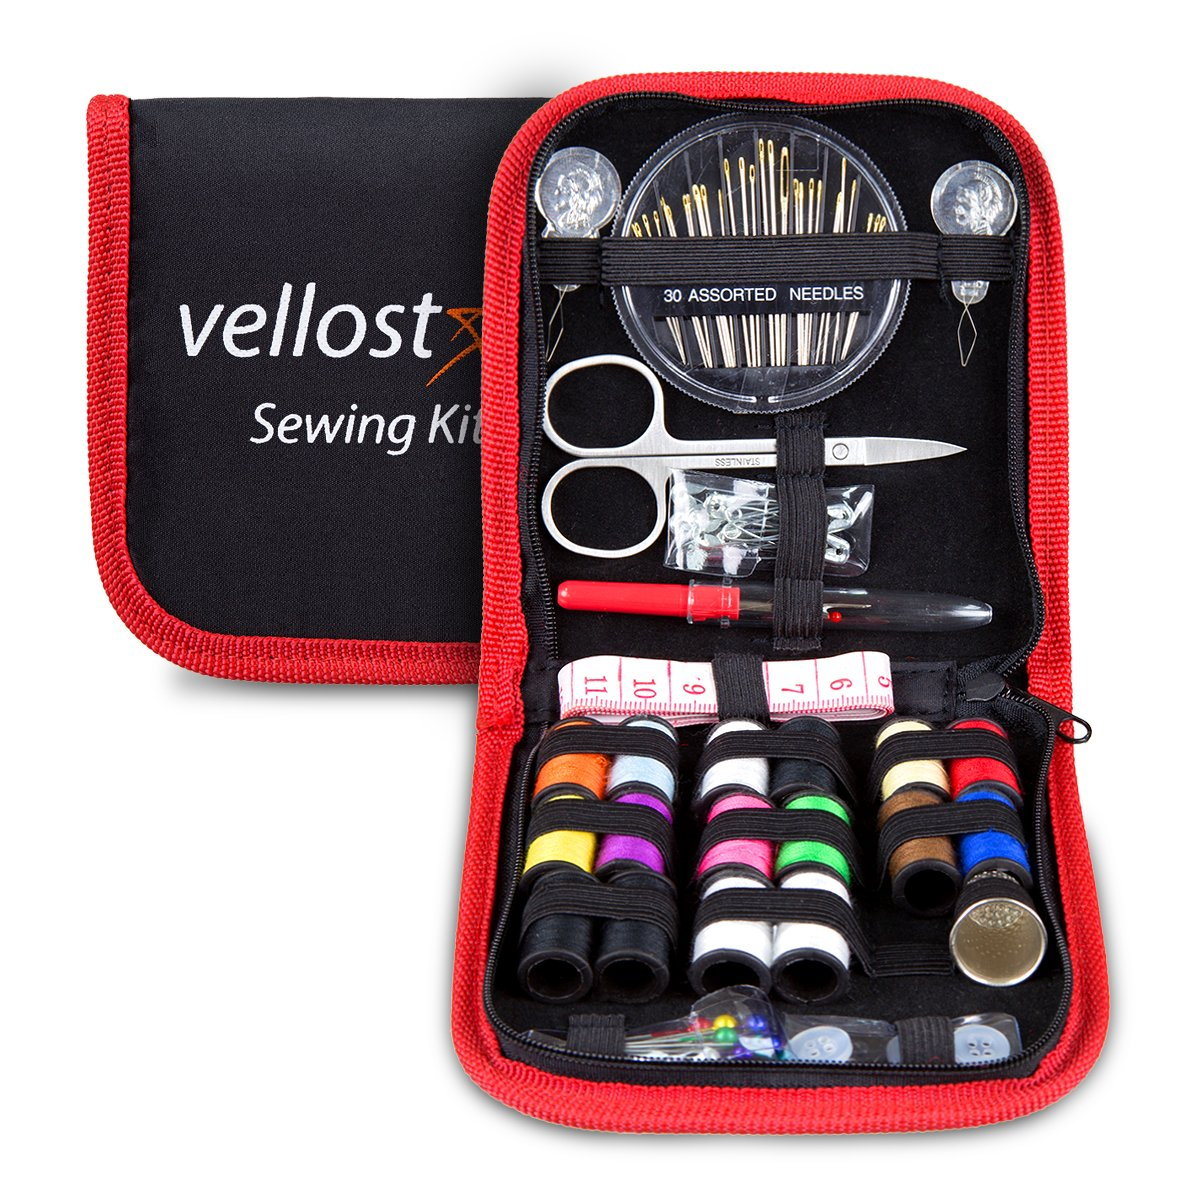 Sewing KIT, Tackle Any Fashion Emergency - Clothing Repairs at Home & in The Office. Highly-Rated Mini Sew Kit for Travel Trips. Mending Supplies & Accessories (Black&Red-Trim, Pack of 1) Vellostar 4337011056